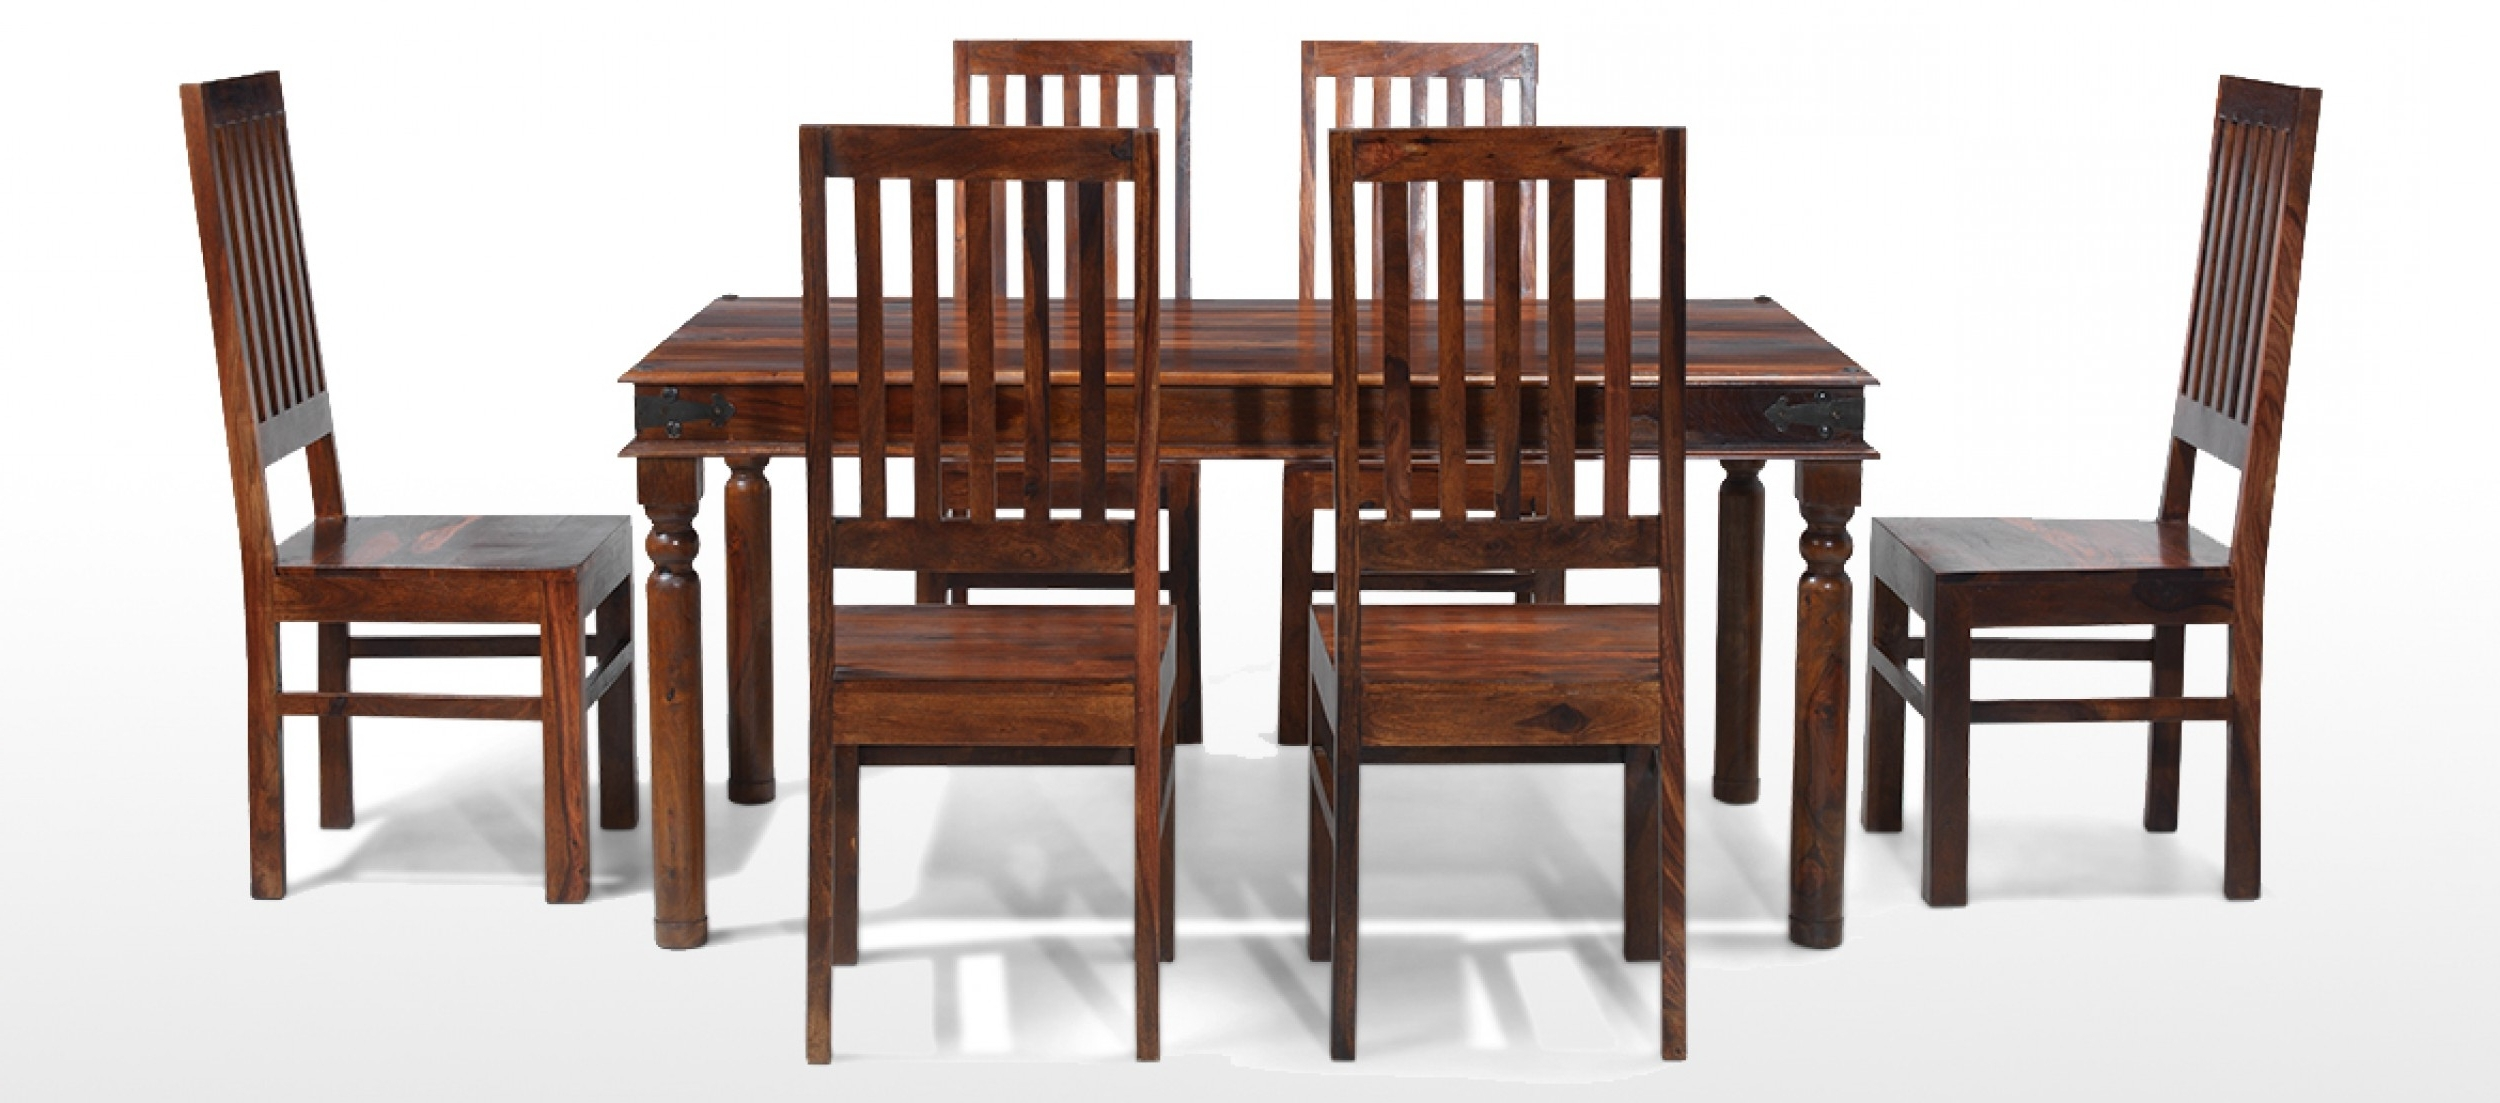 Quercus Living With Dining Tables And 6 Chairs (View 5 of 25)